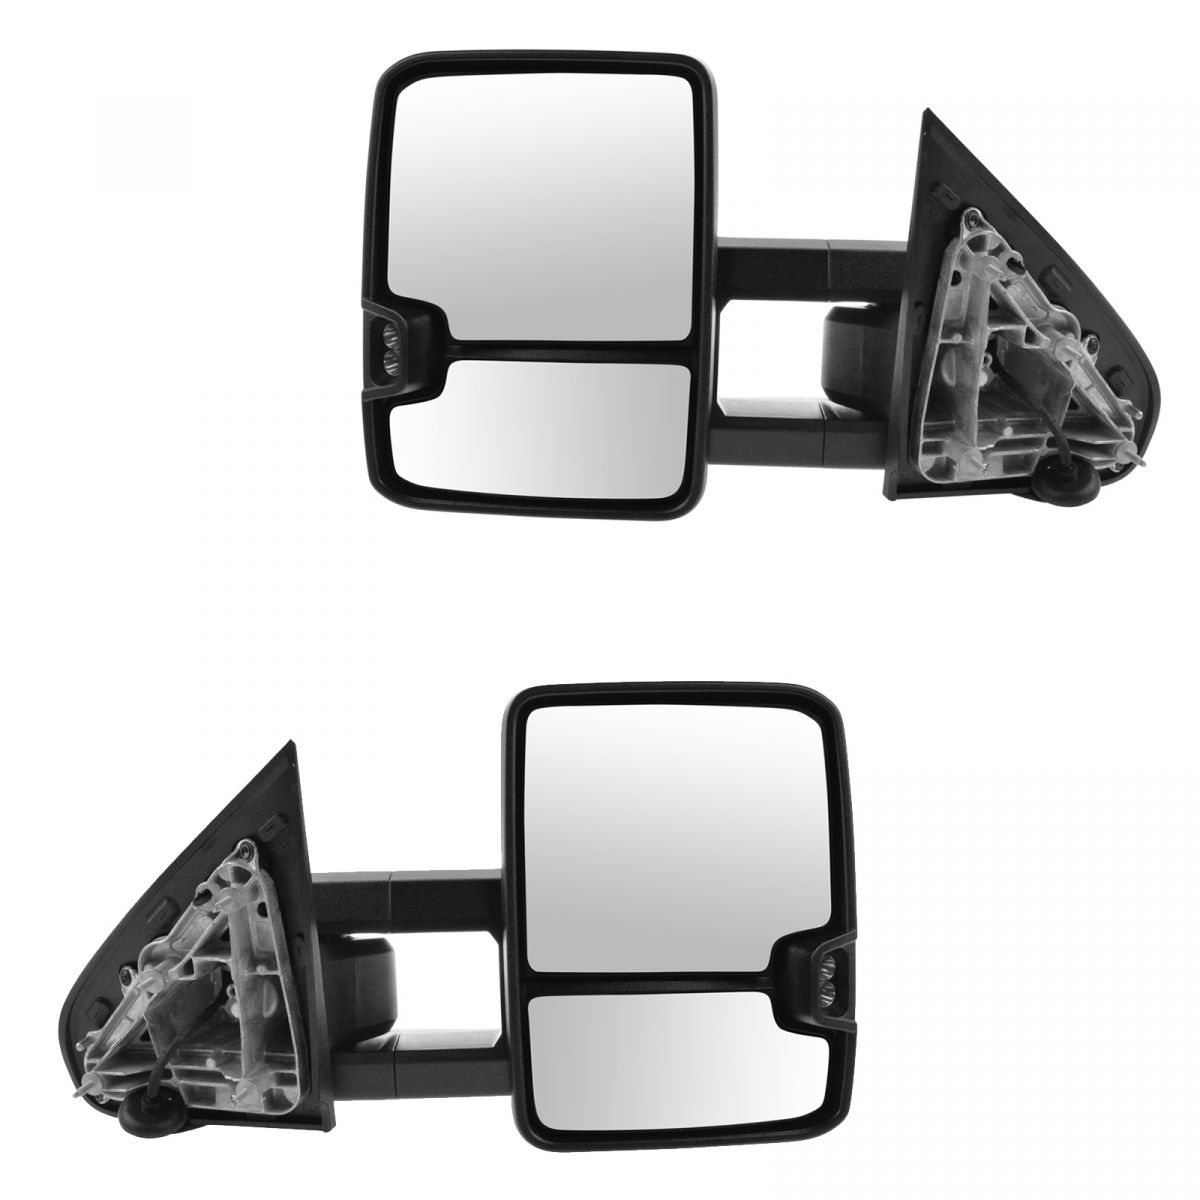 Black Fold Power Side View Mirrors Pair Set for 88-00 Chevy GMC Truck New RH+LH